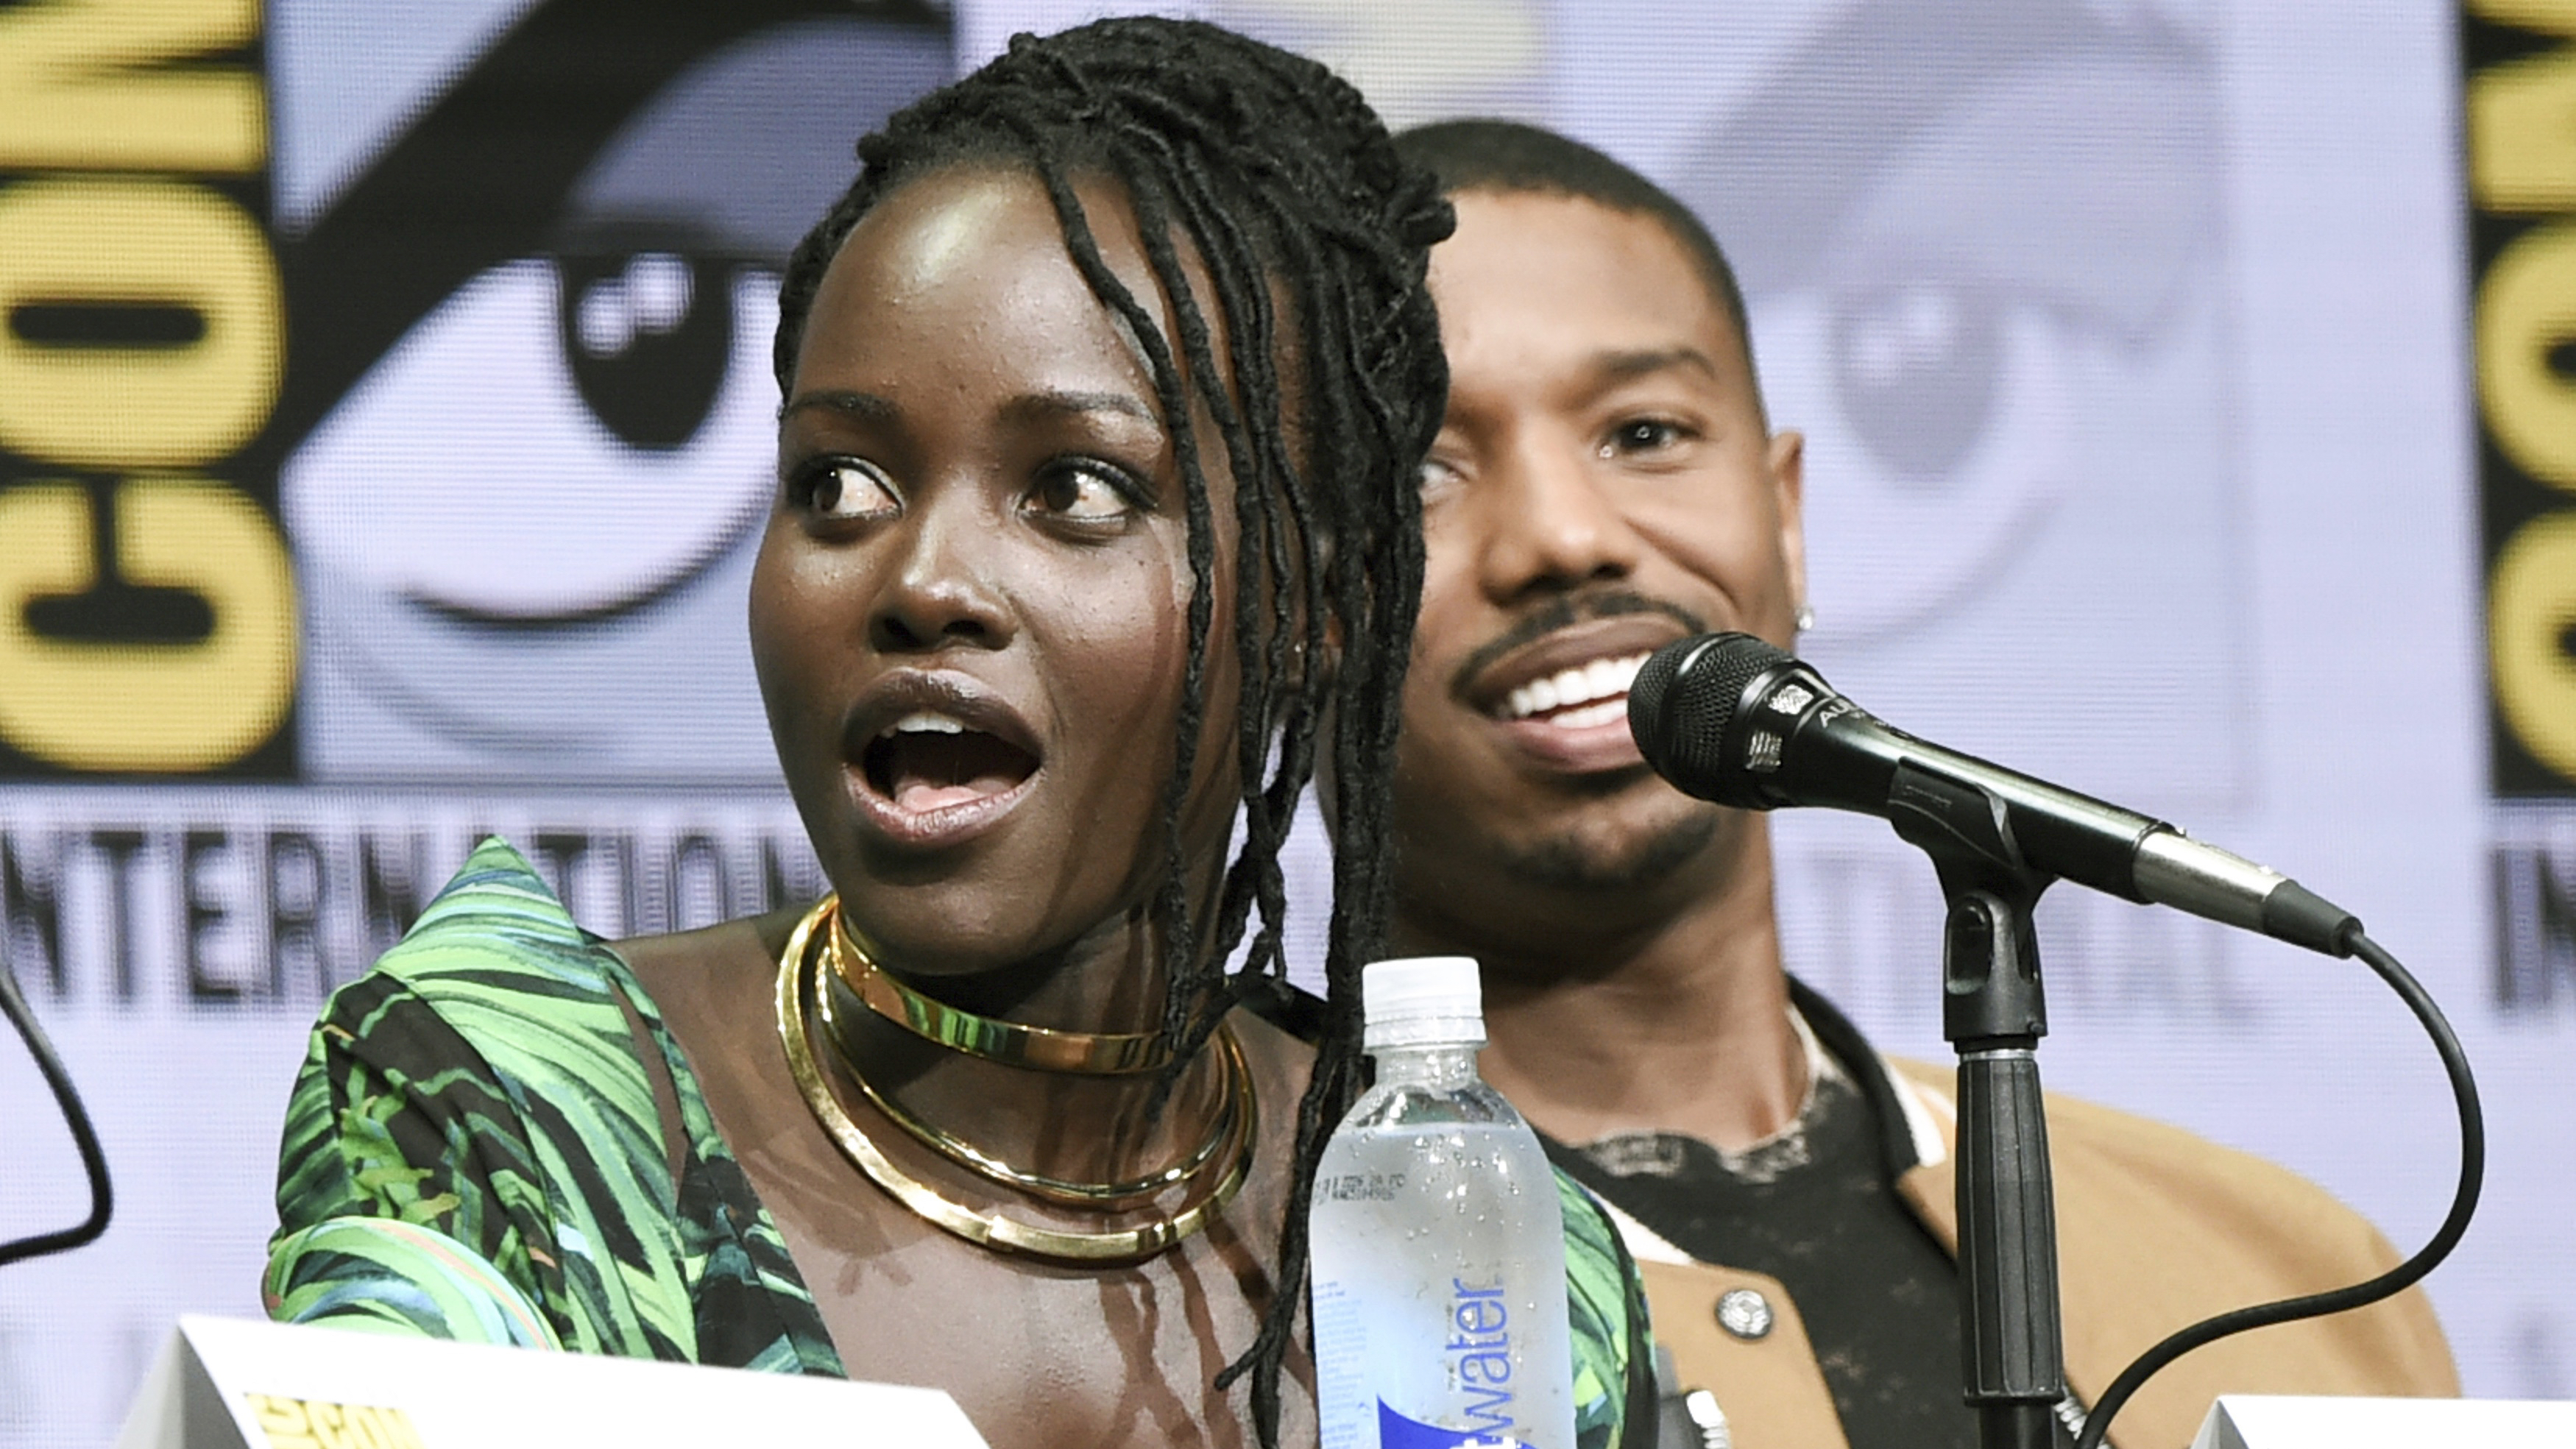 """Lupita Nyong'o, left, and Michael B. Jordan attend the """"Marvel"""" panel on day 3 of Comic-Con International on Saturday, July 22, 2017, in San Diego. (Photo by Richard Shotwell/Invision/AP)"""